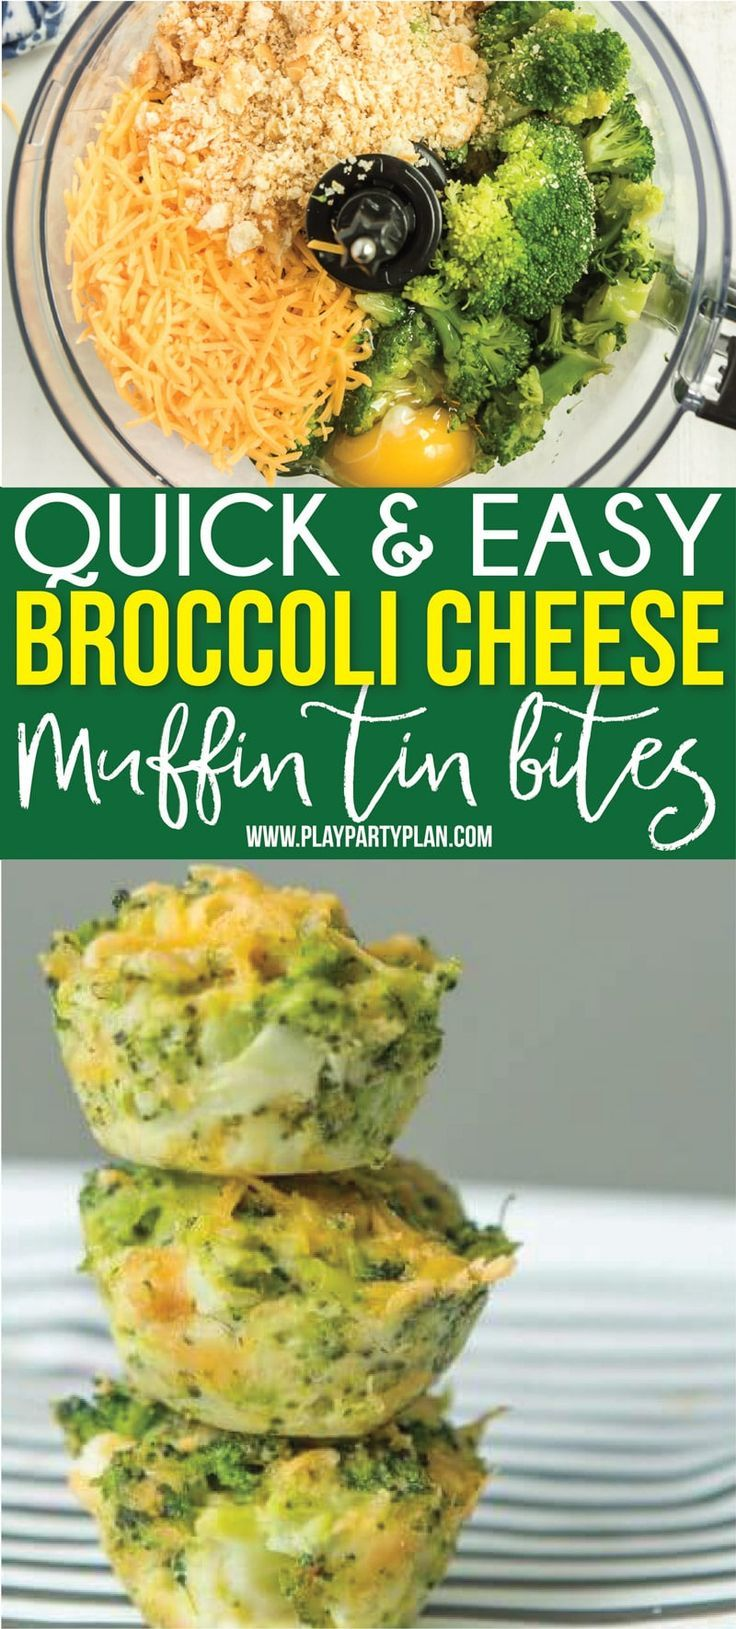 These Broccoli Cheese Bites Make The Perfect Side For Dinner Or A